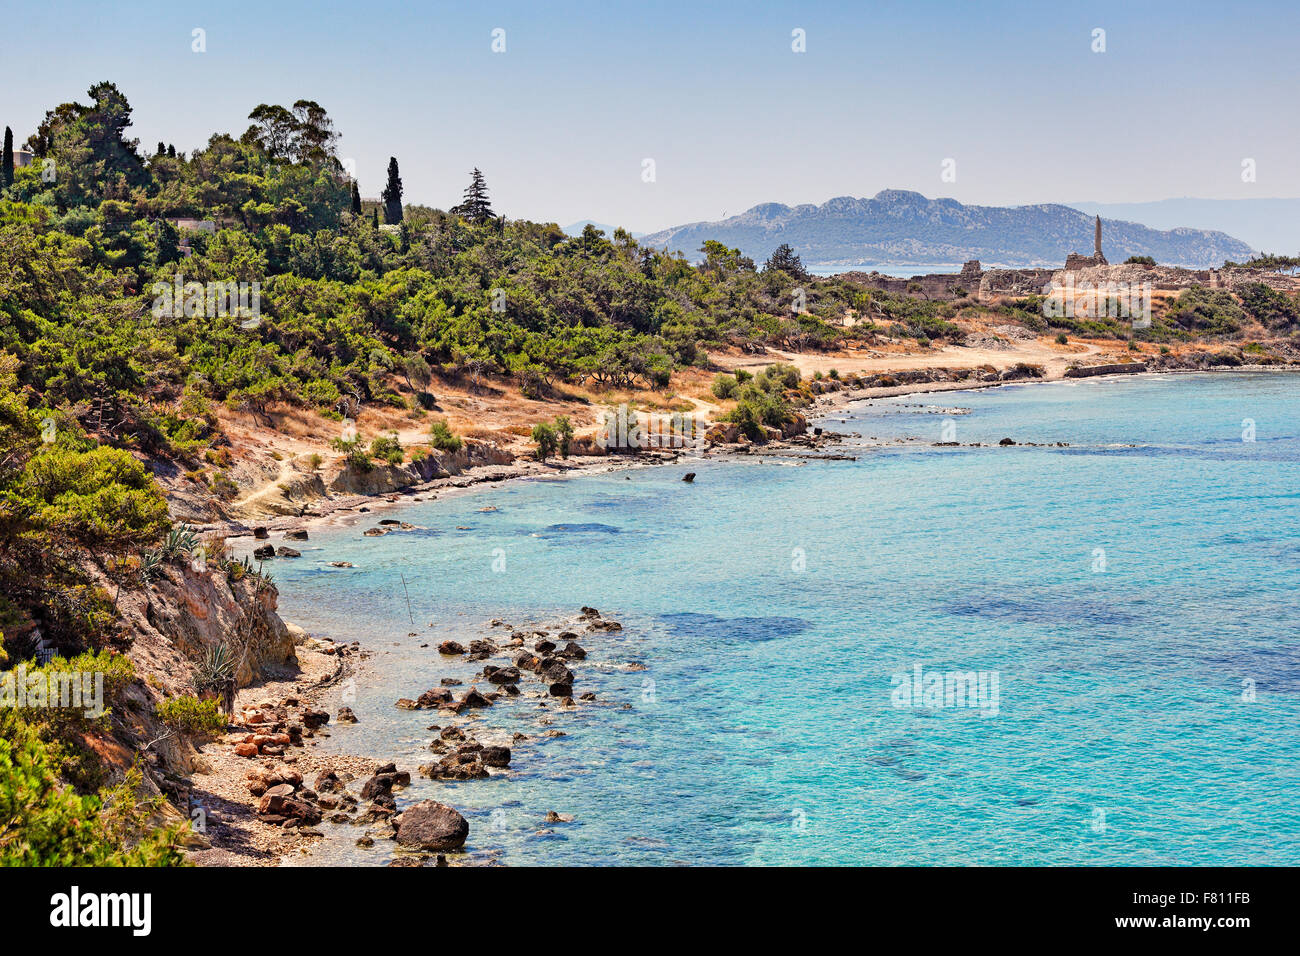 The Temple of Apollo (6th cent. B.C.) at the top of the hill of Kolona in Aegina island, Greece - Stock Image